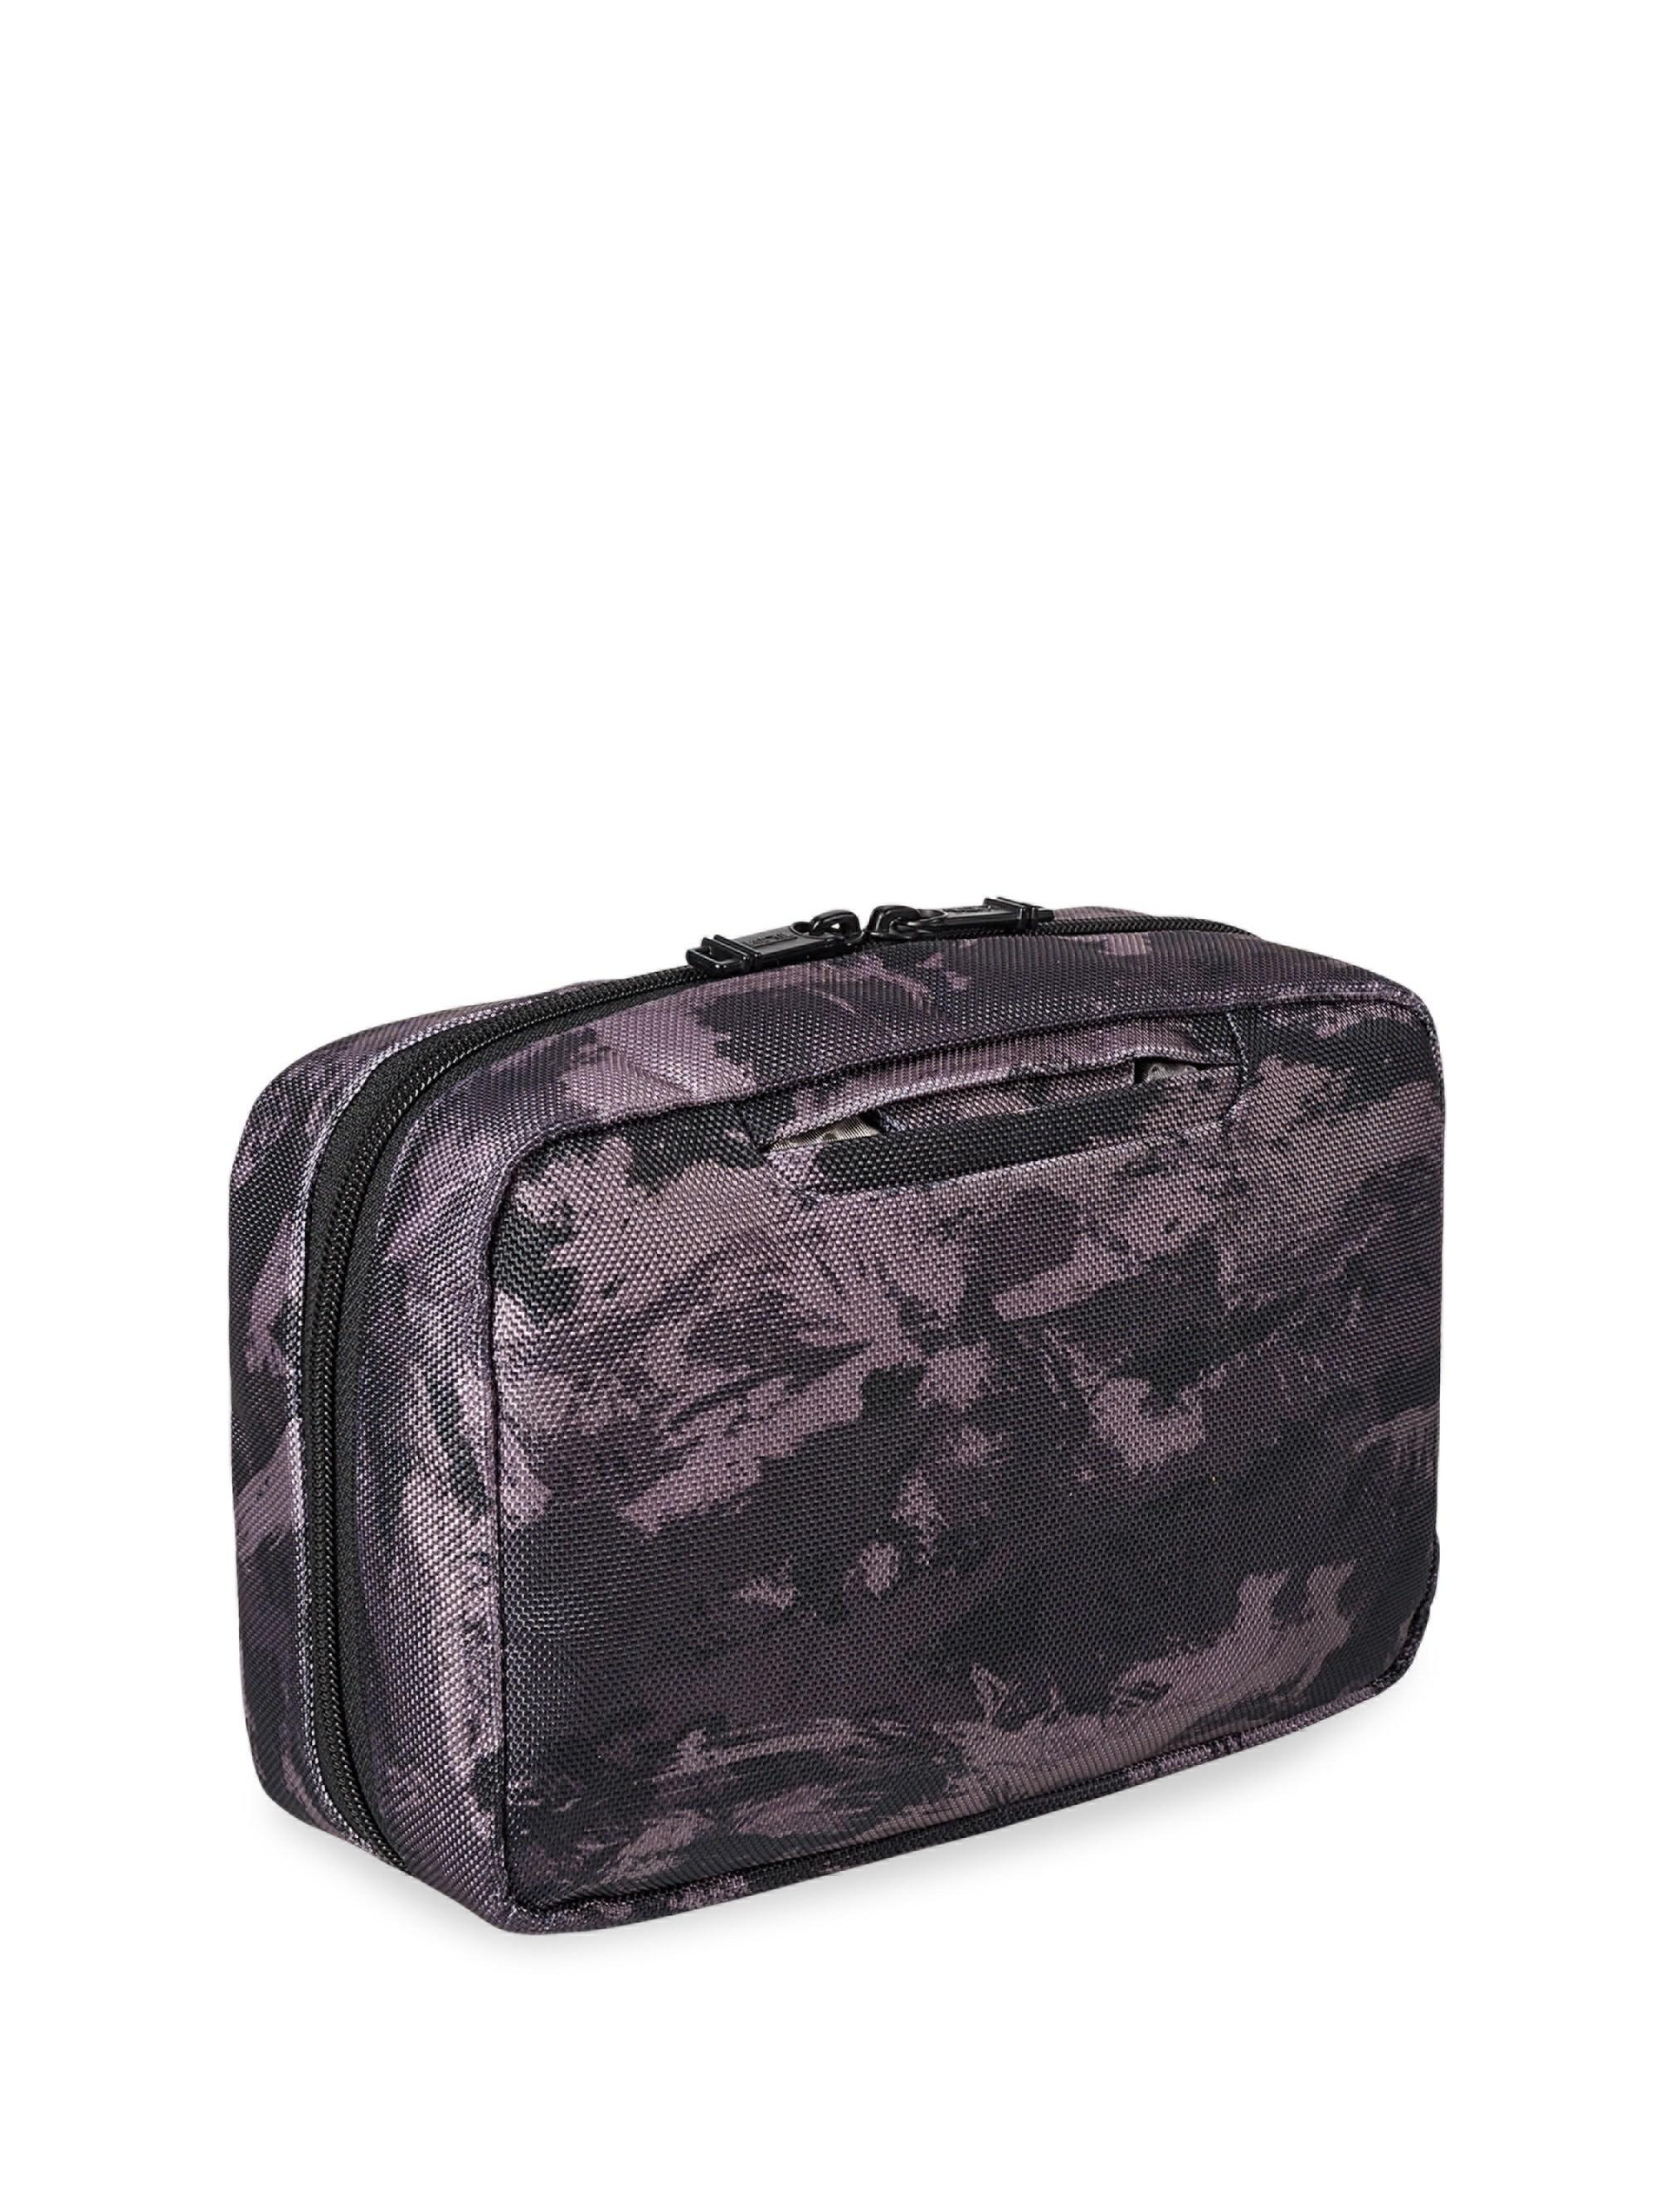 5008639bf74a ... Tumi Alpha Bravo Dopp Kit in Gray - Lyst los angeles 3520e 5746e ...